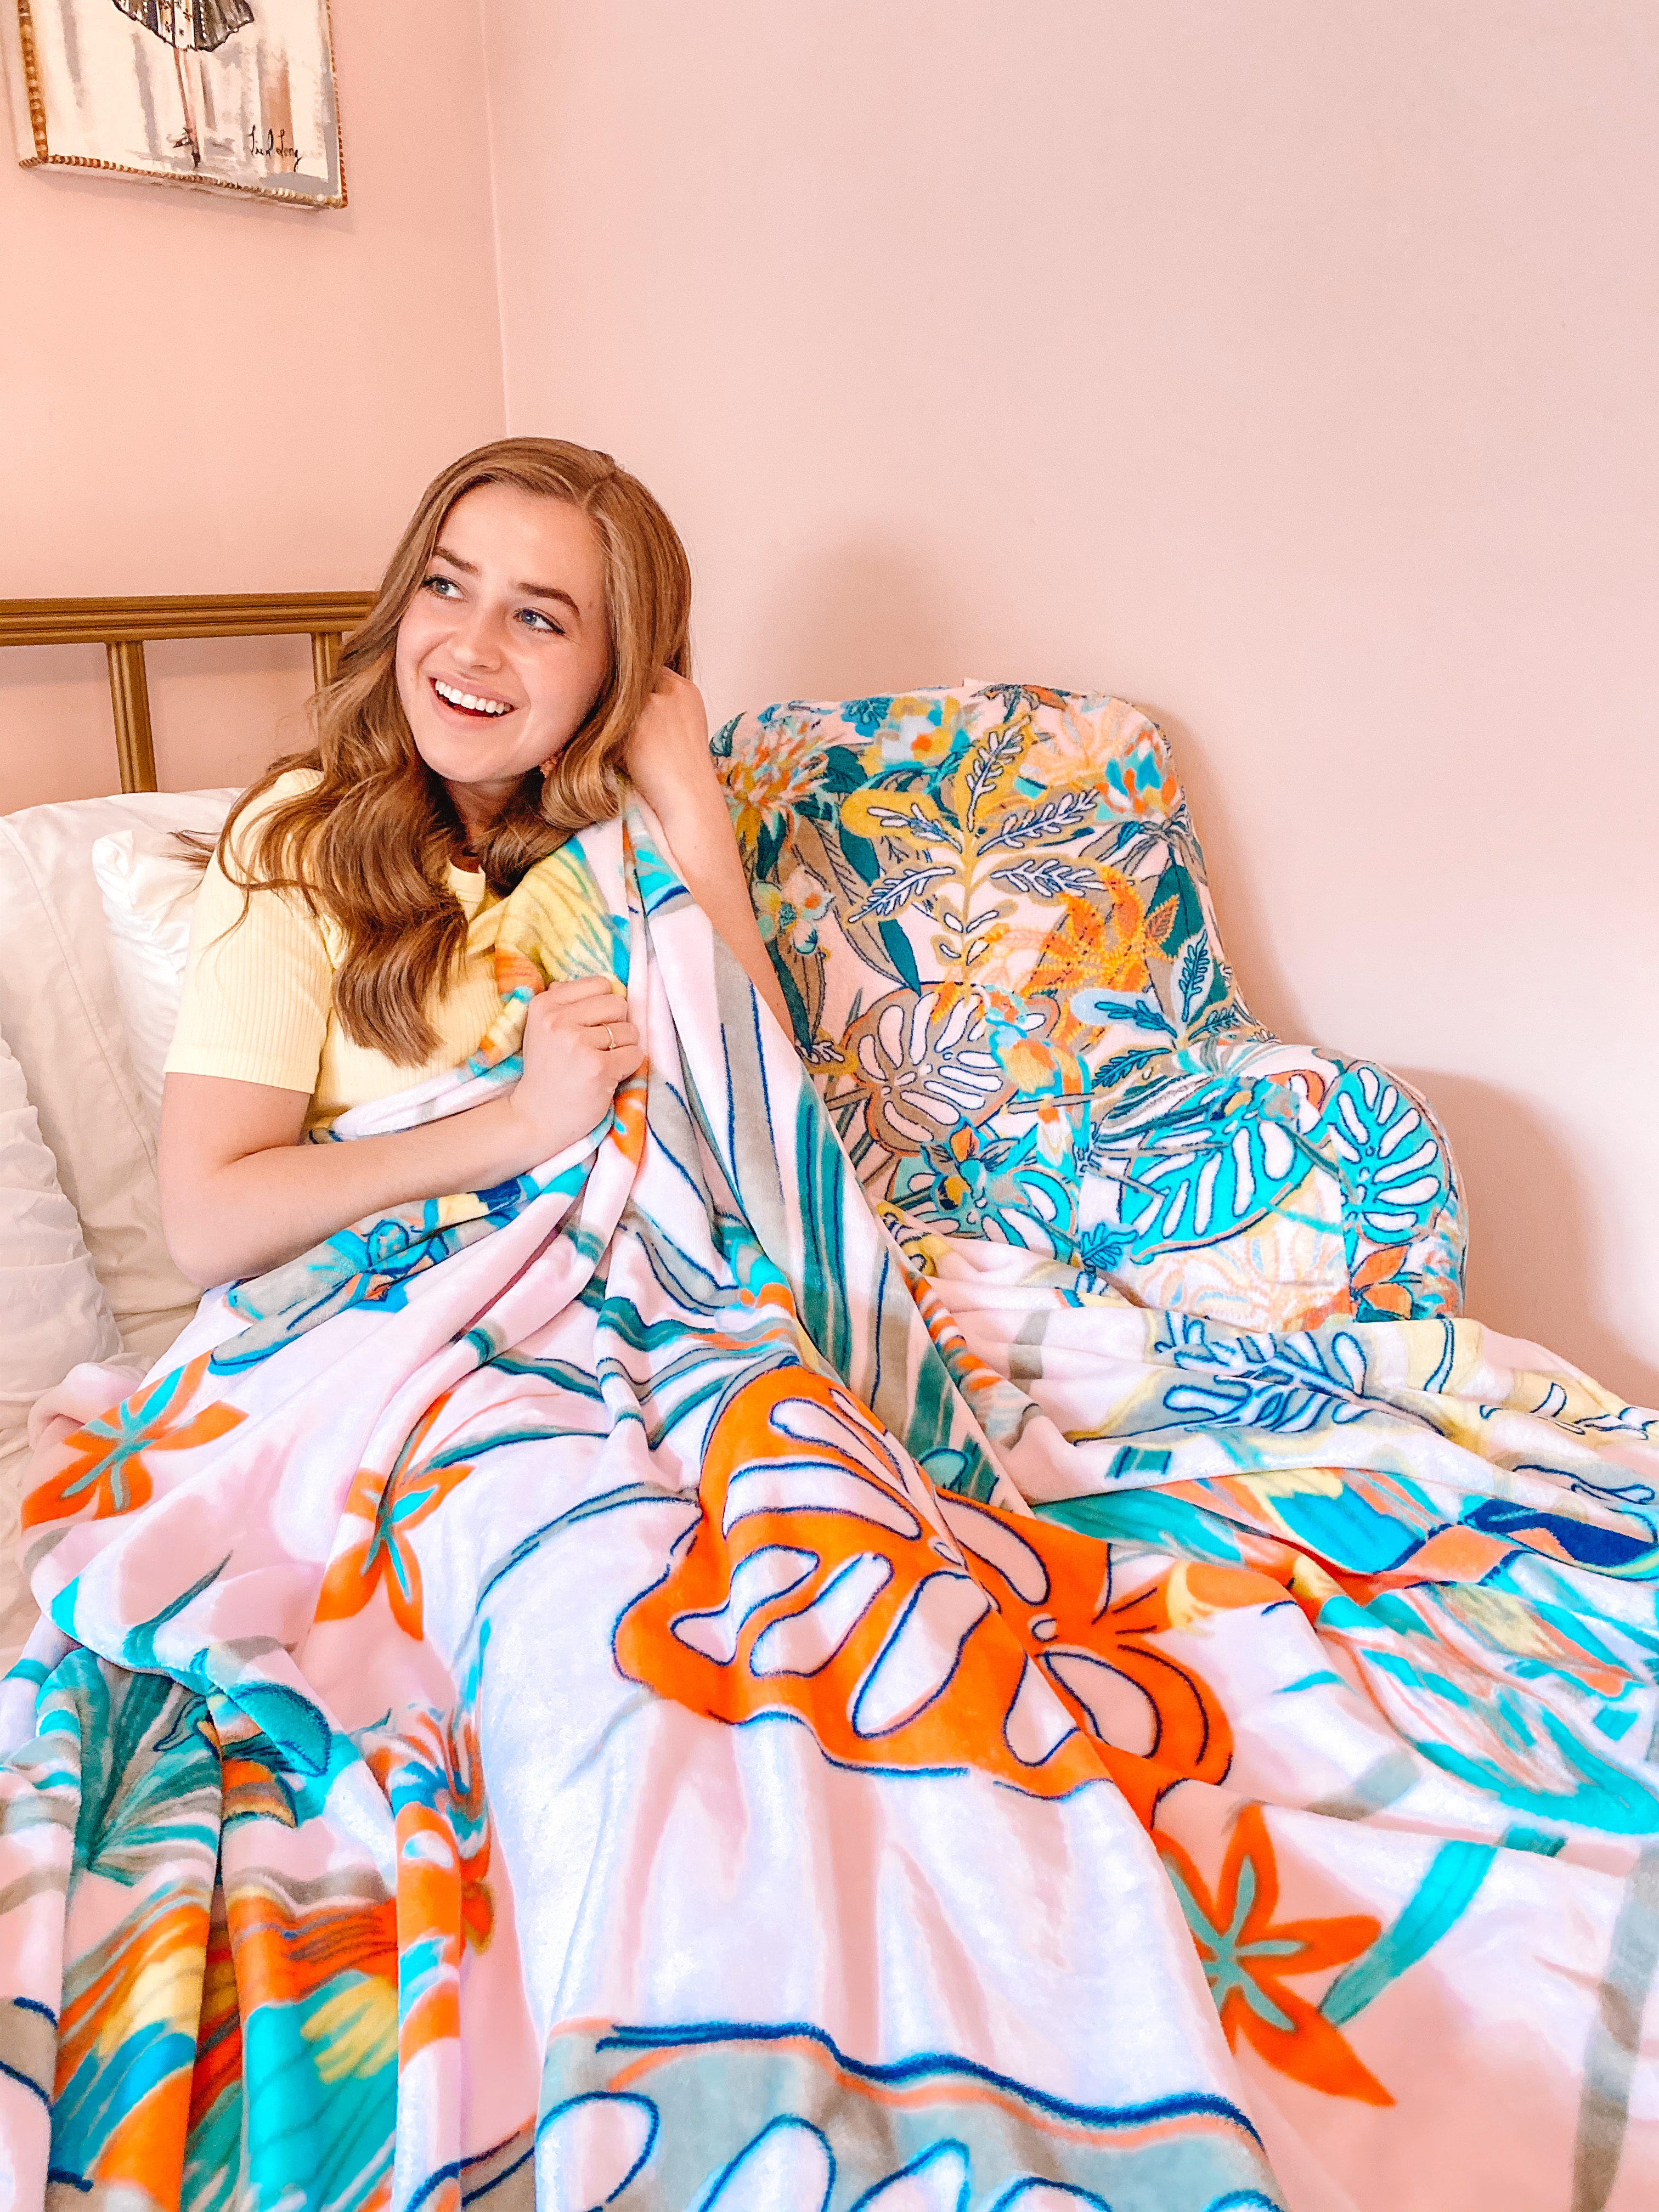 woman sits in pink bedroom with soft vera bradley blanket in pattern rain forest canopy